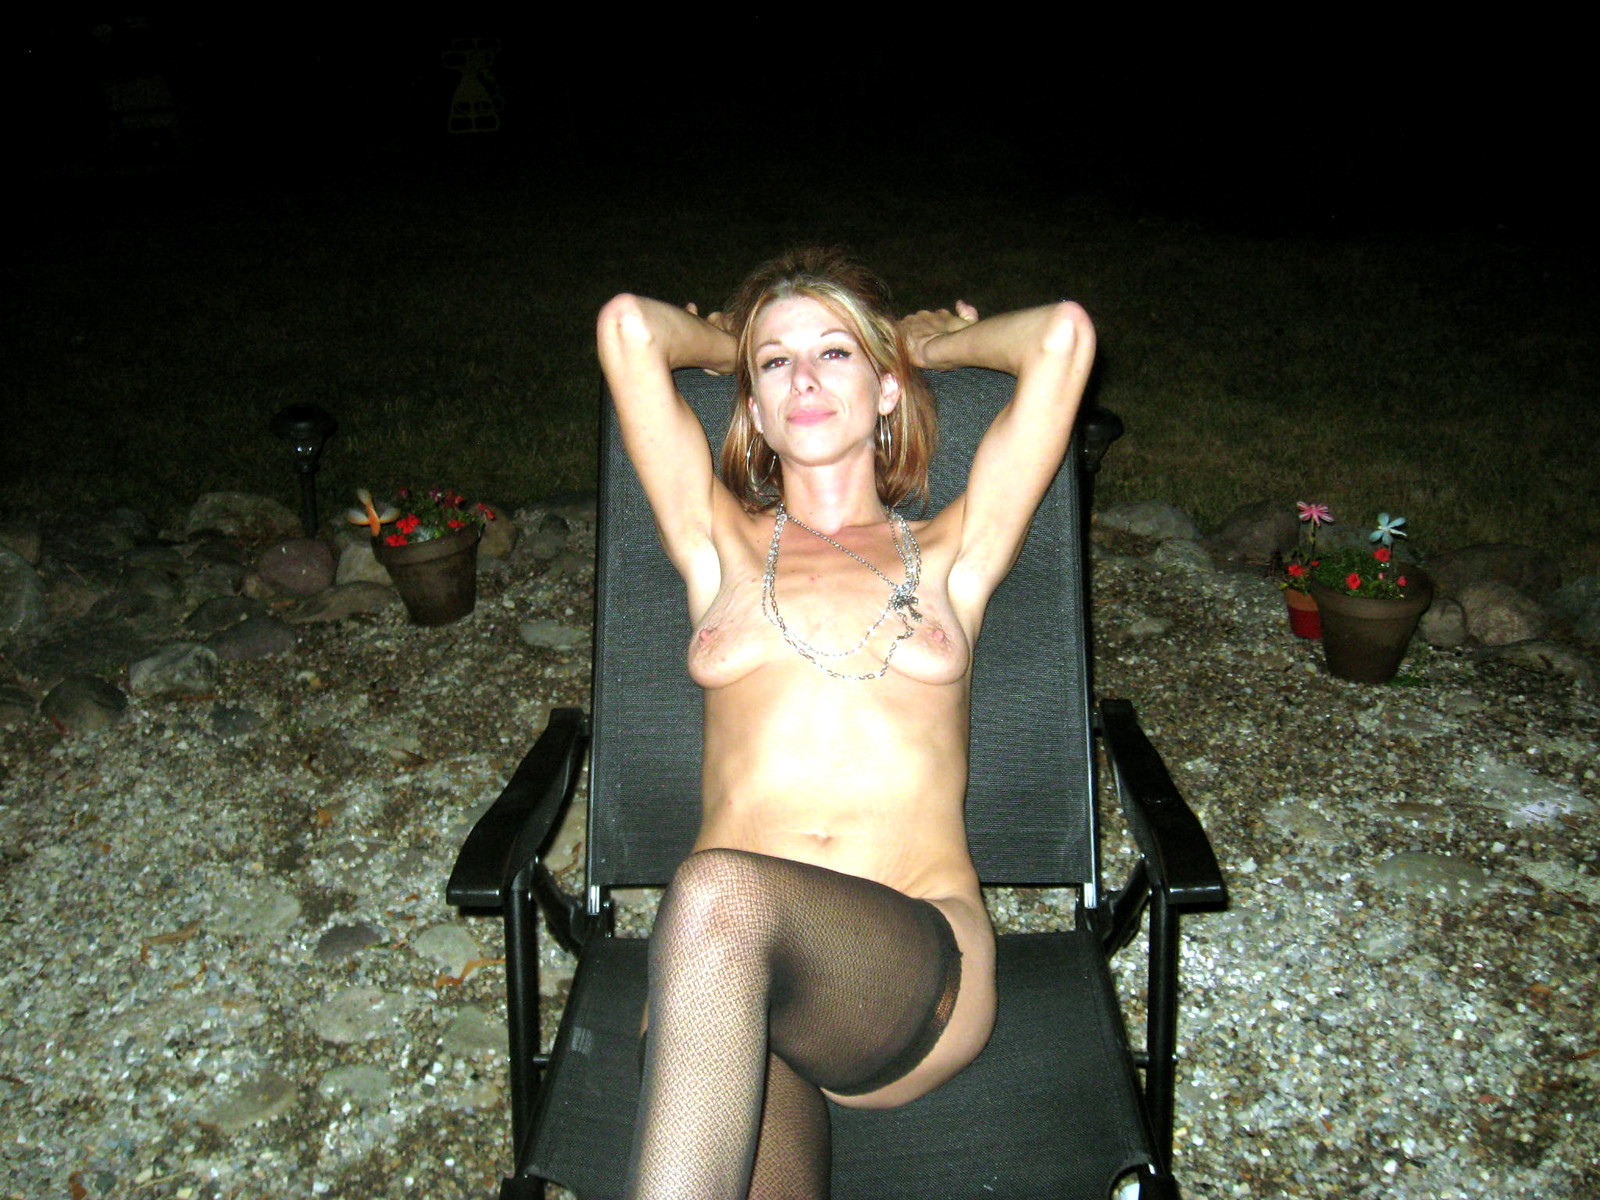 Cheating wife naked outdoor